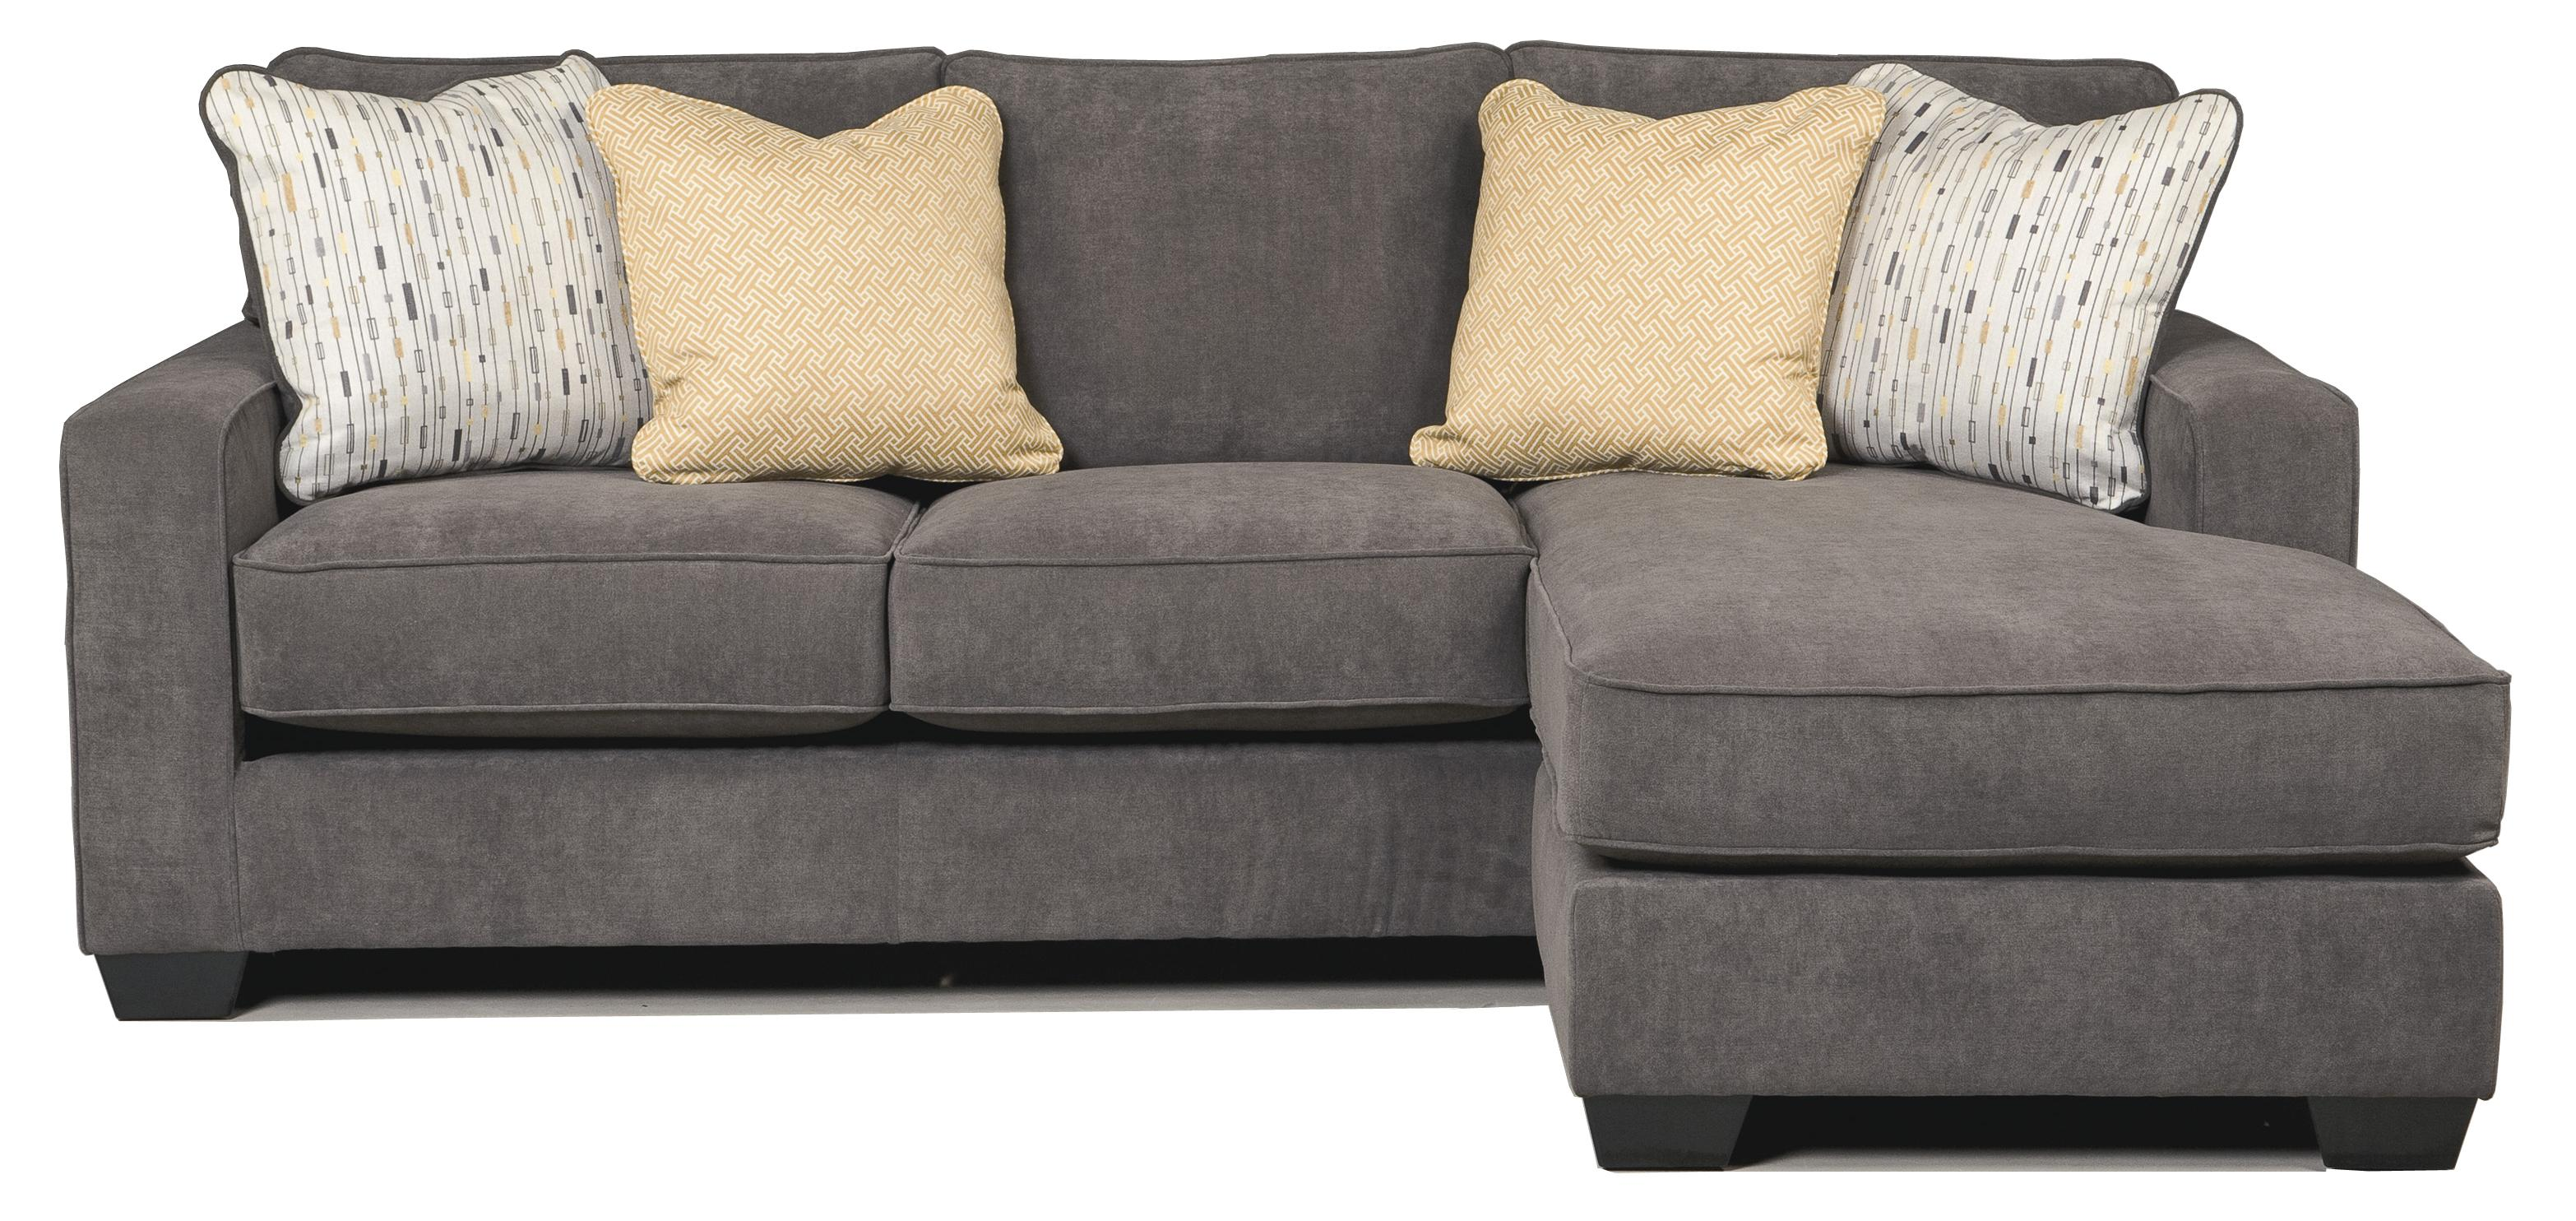 Ashley Signature Design Hodan - Marble Sofa Chaise - Item Number 7970018  sc 1 st  Dunk u0026 Bright Furniture : ashley furniture chaise - Sectionals, Sofas & Couches